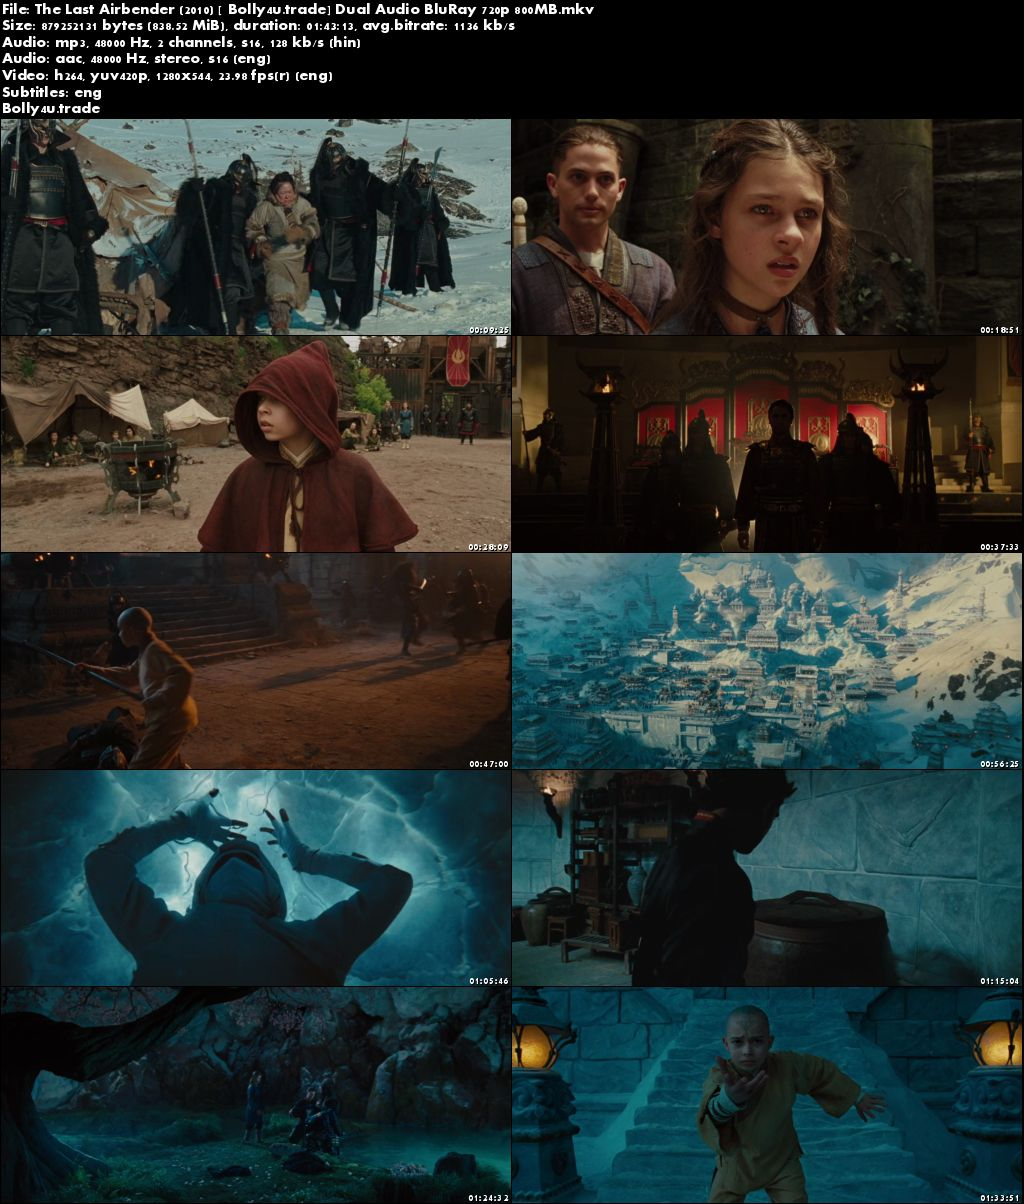 The Last Airbender 2010 BluRay 800MB Hindi Dual Audio 720p ESub Download